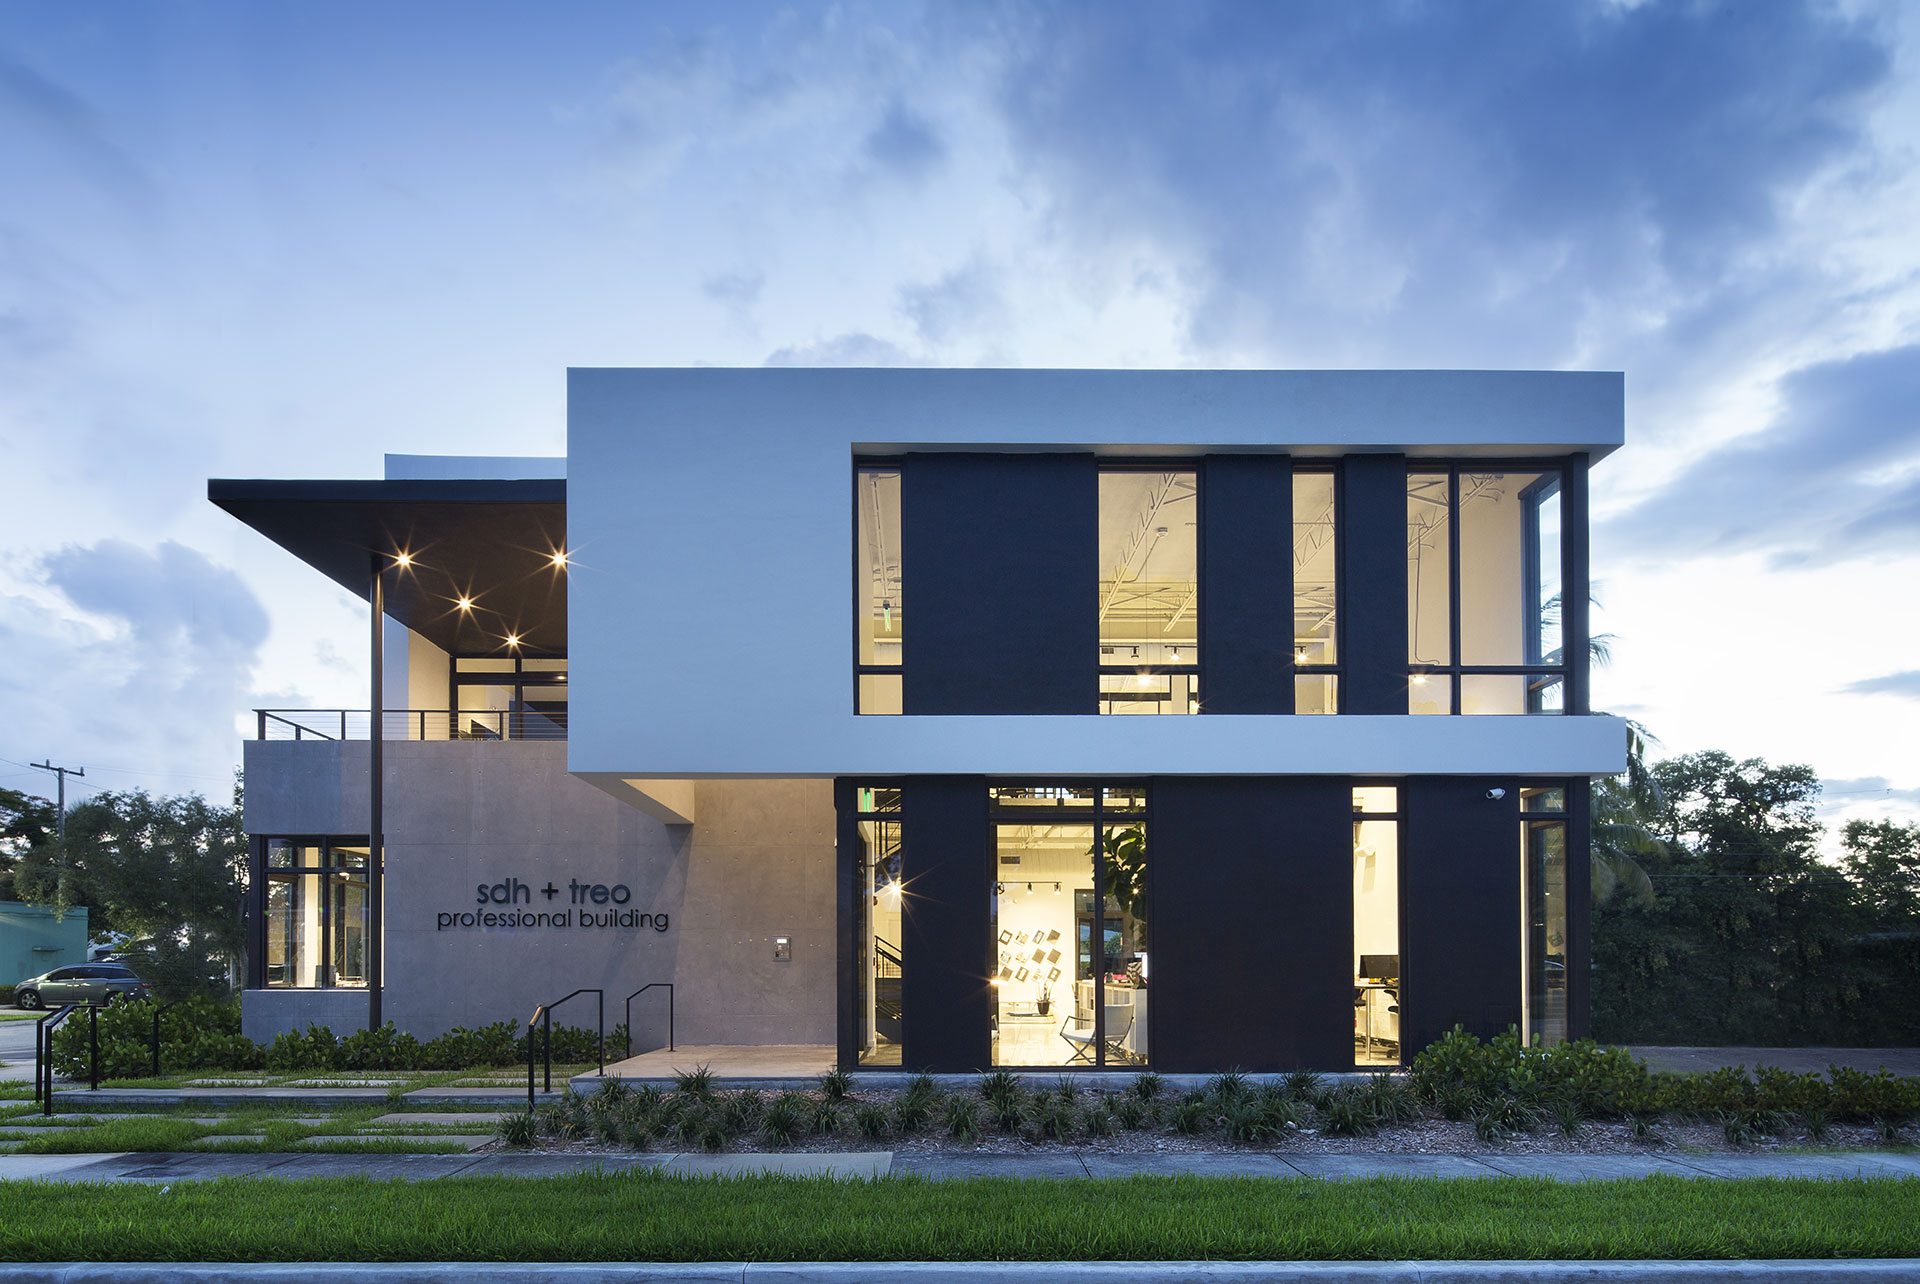 Front View Architecture project at 18200 NMB, Florida